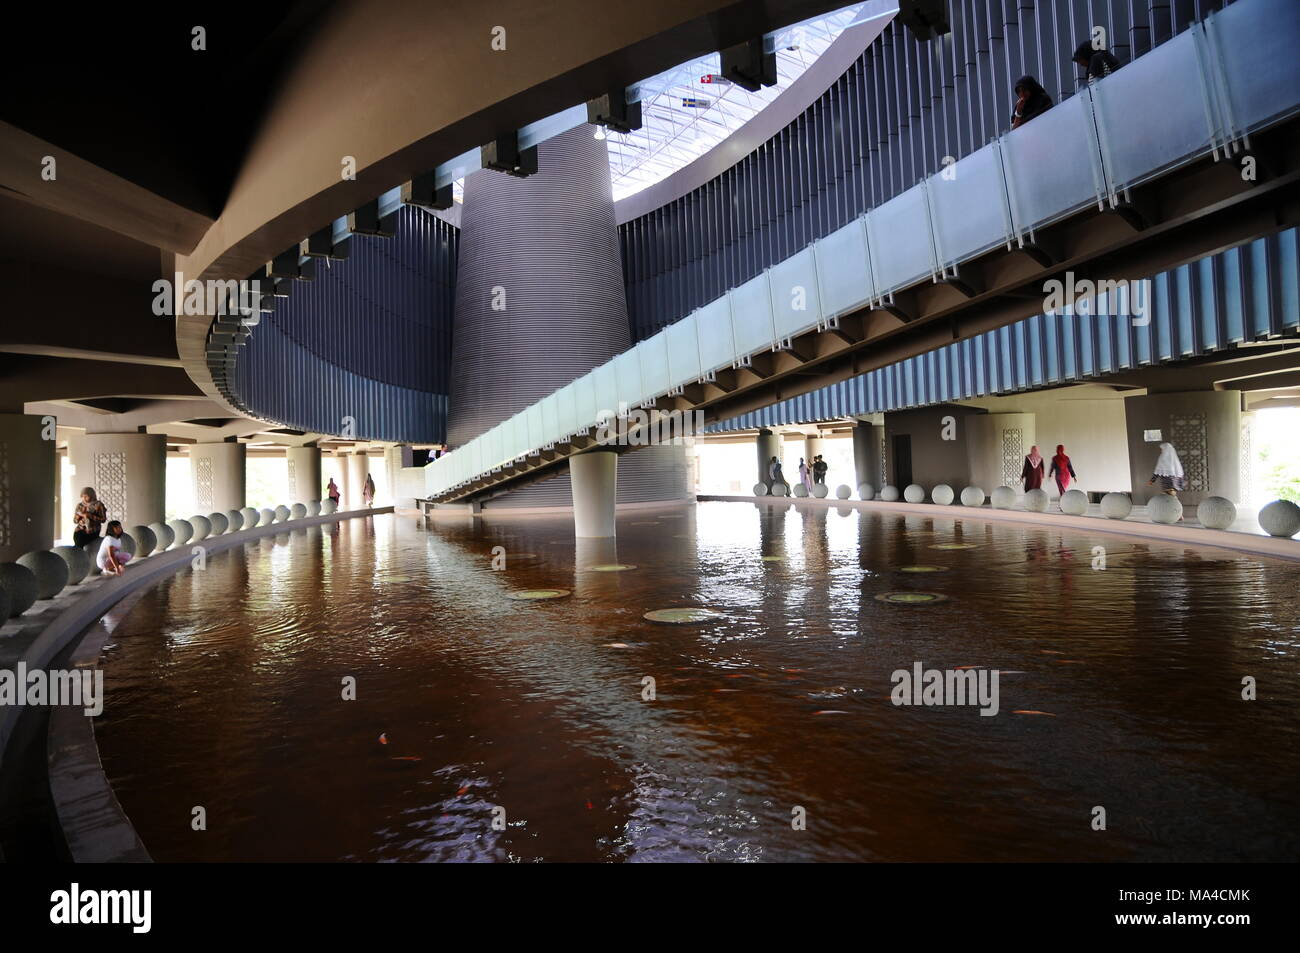 Aceh Tsunami Museum In Banda Aceh Aceh Province Indonesia Stock Photo Alamy